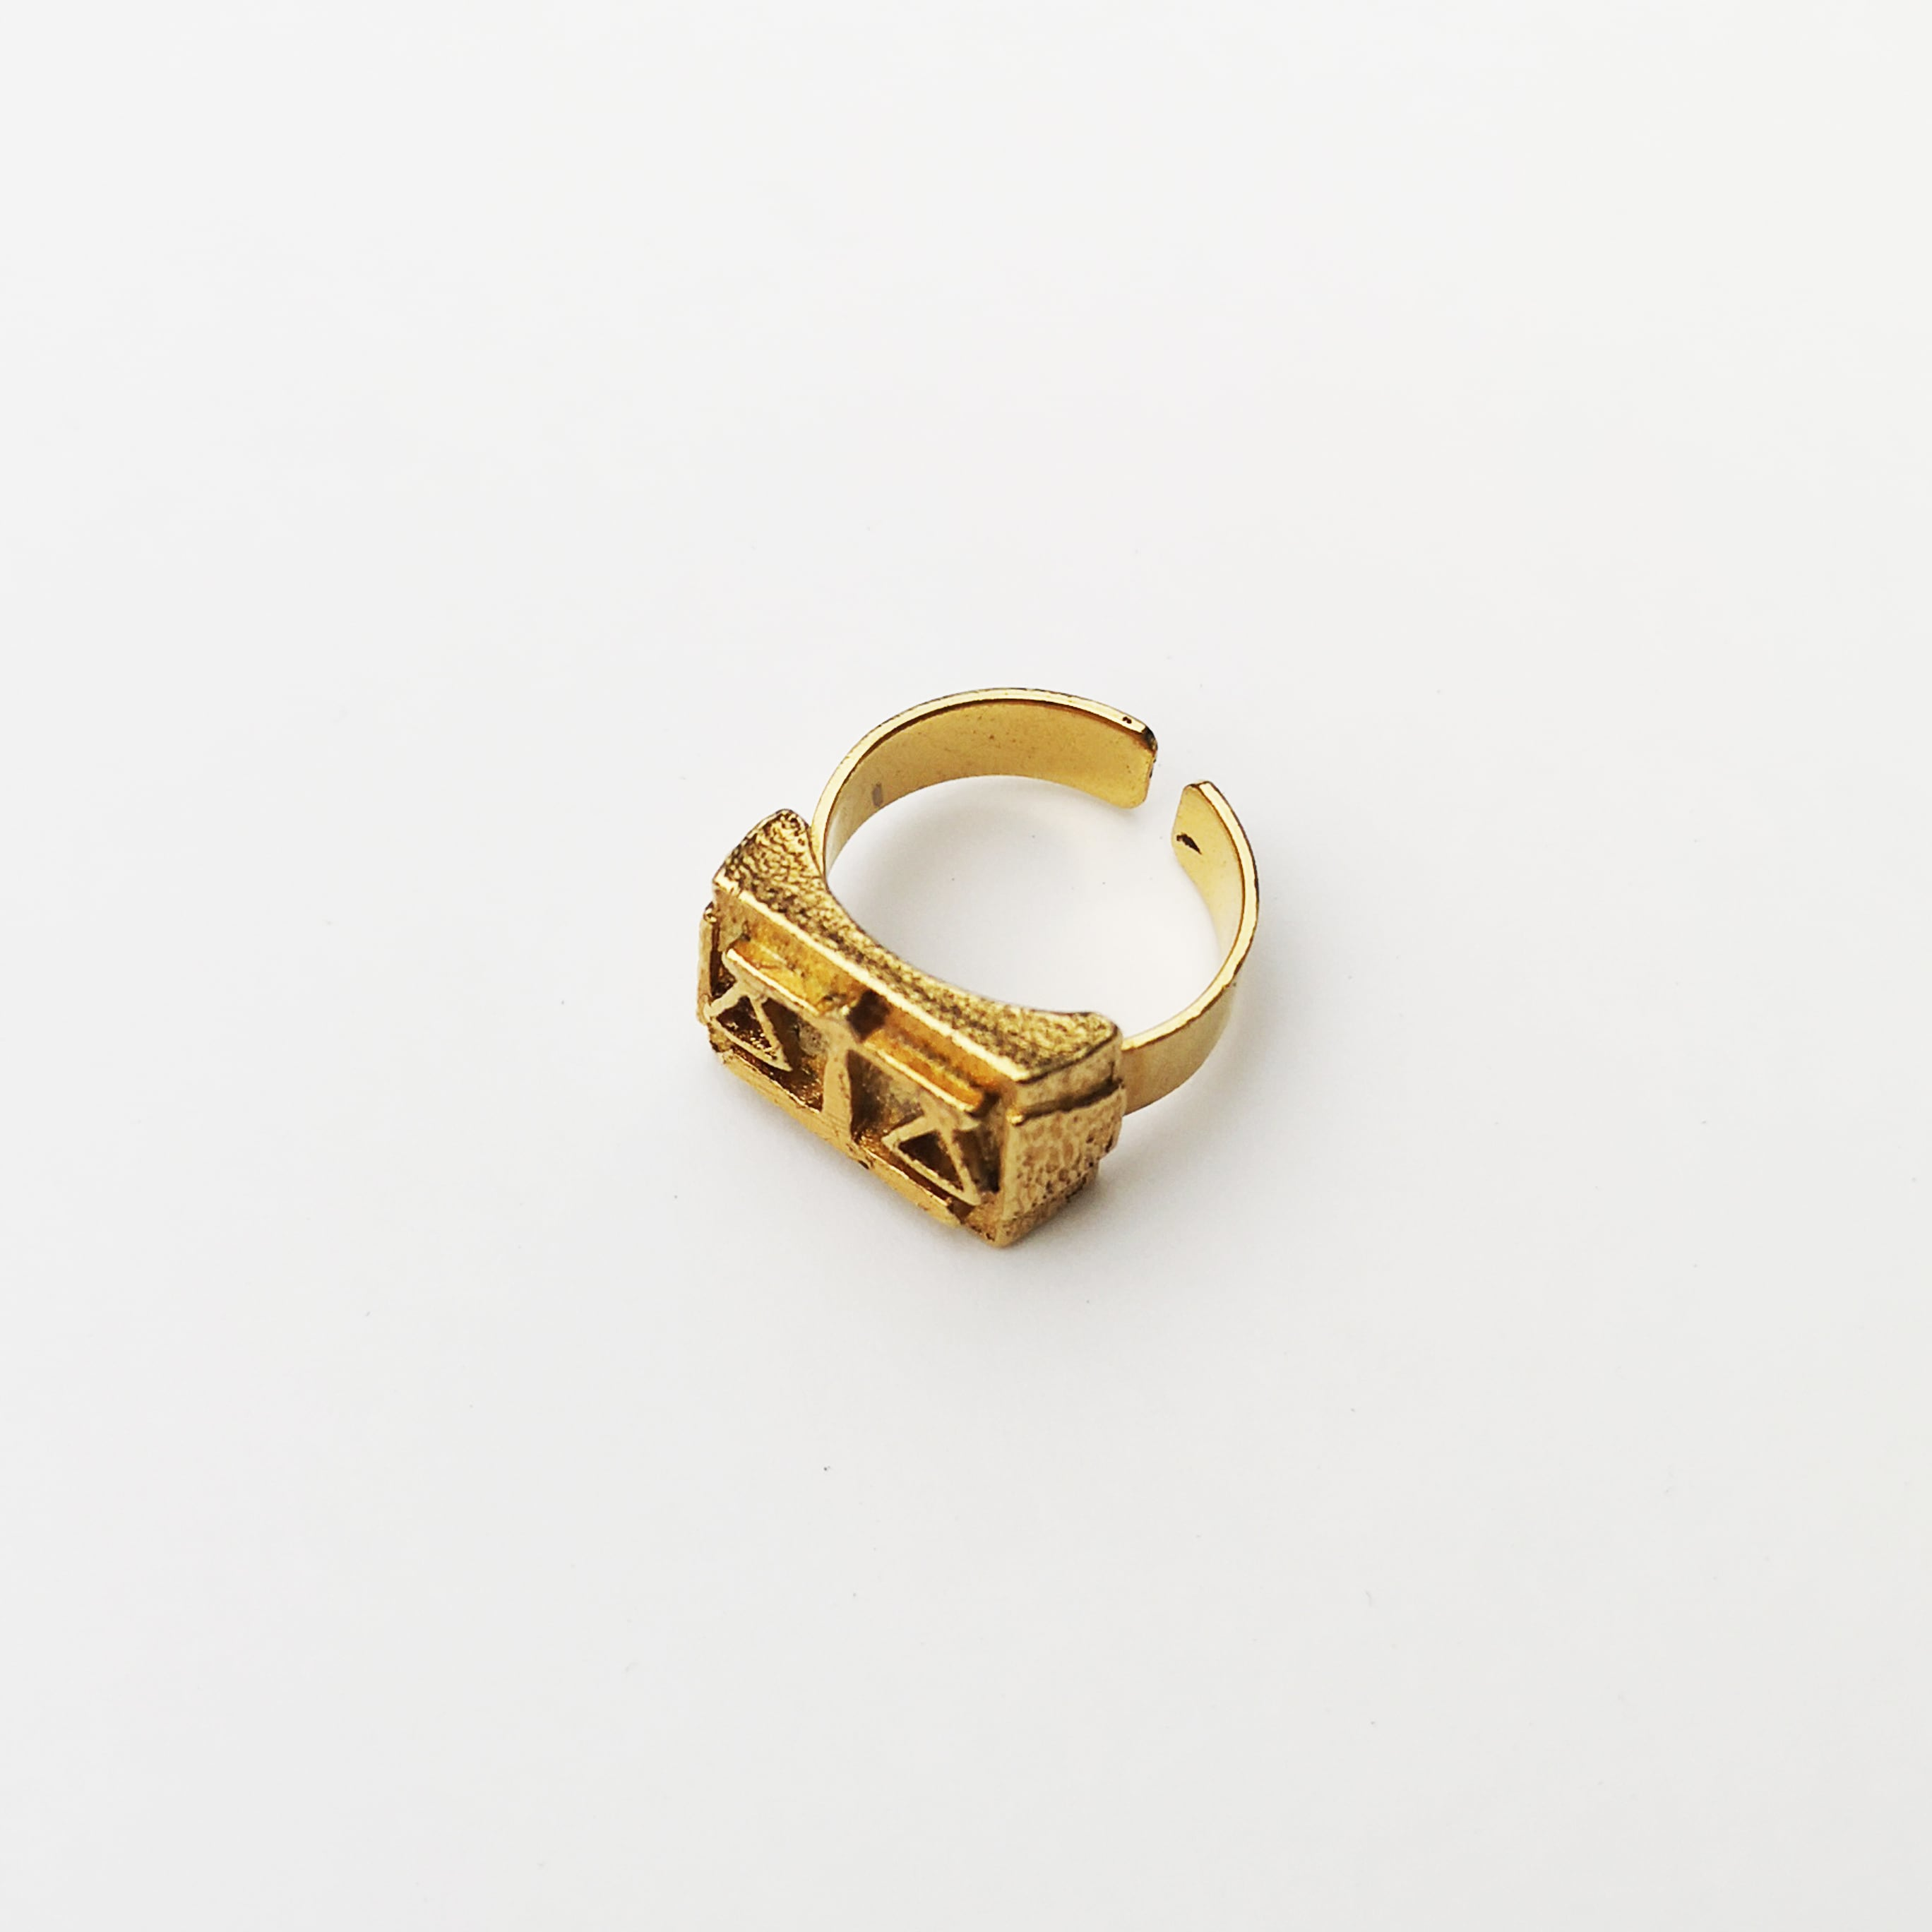 LIBRA RING / 925 Sterling Silver plated in 23K Gold